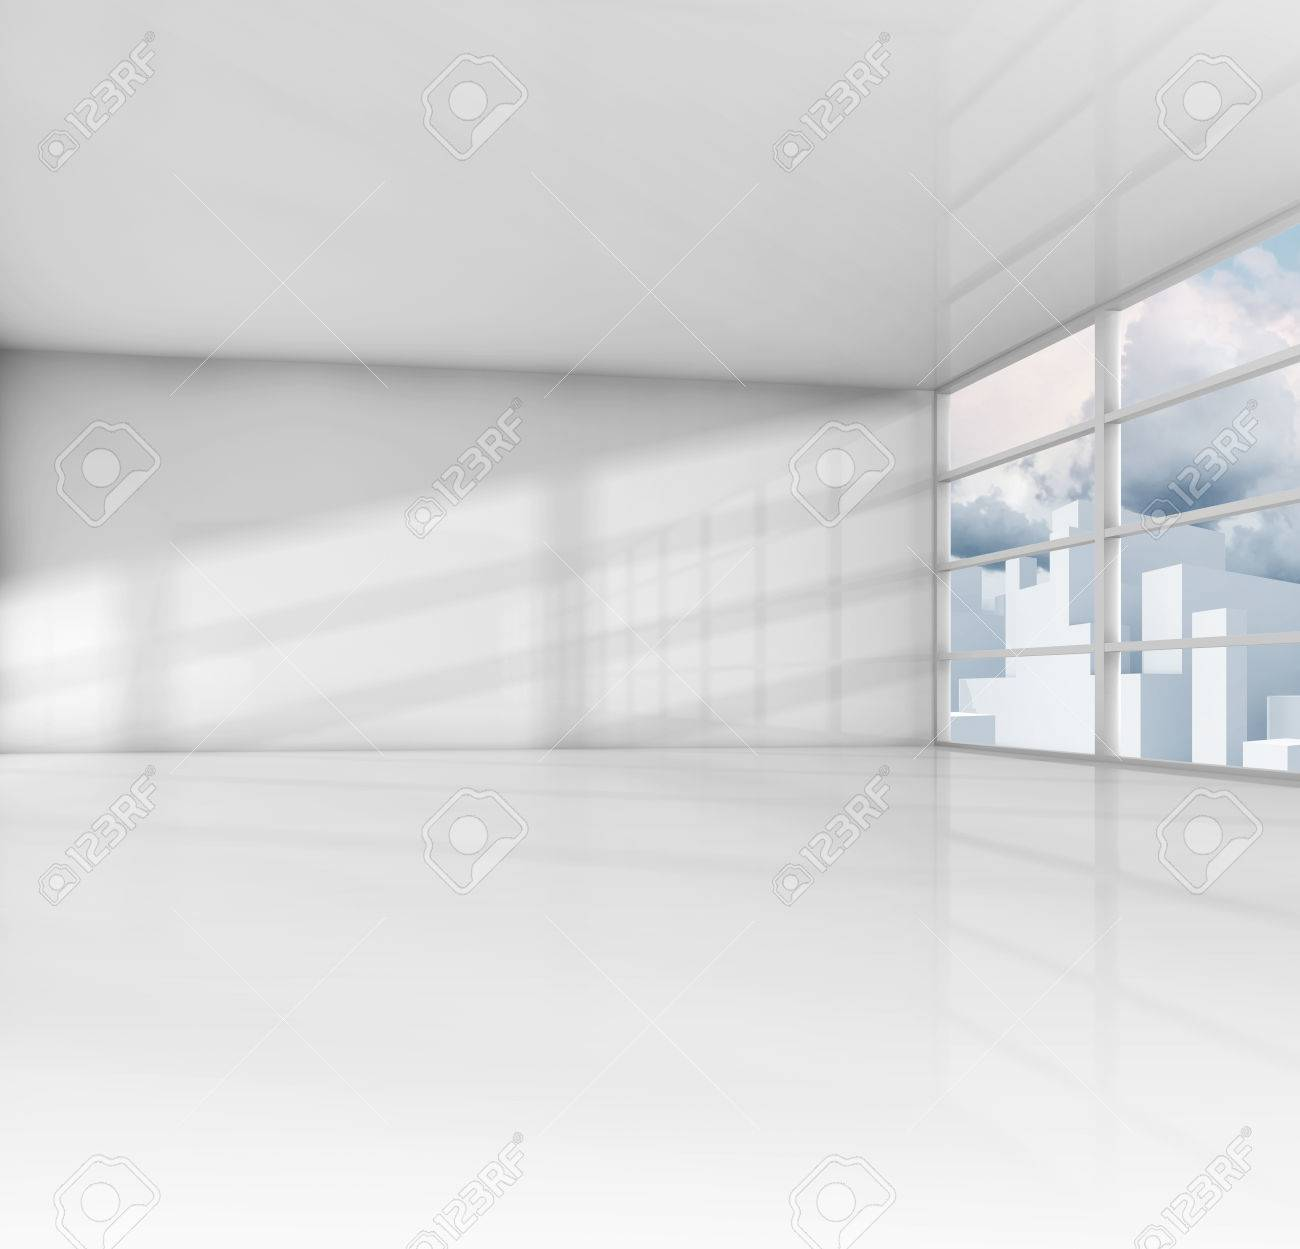 Abstract White Interior, Empty Office Room With Modern Cityscape ...